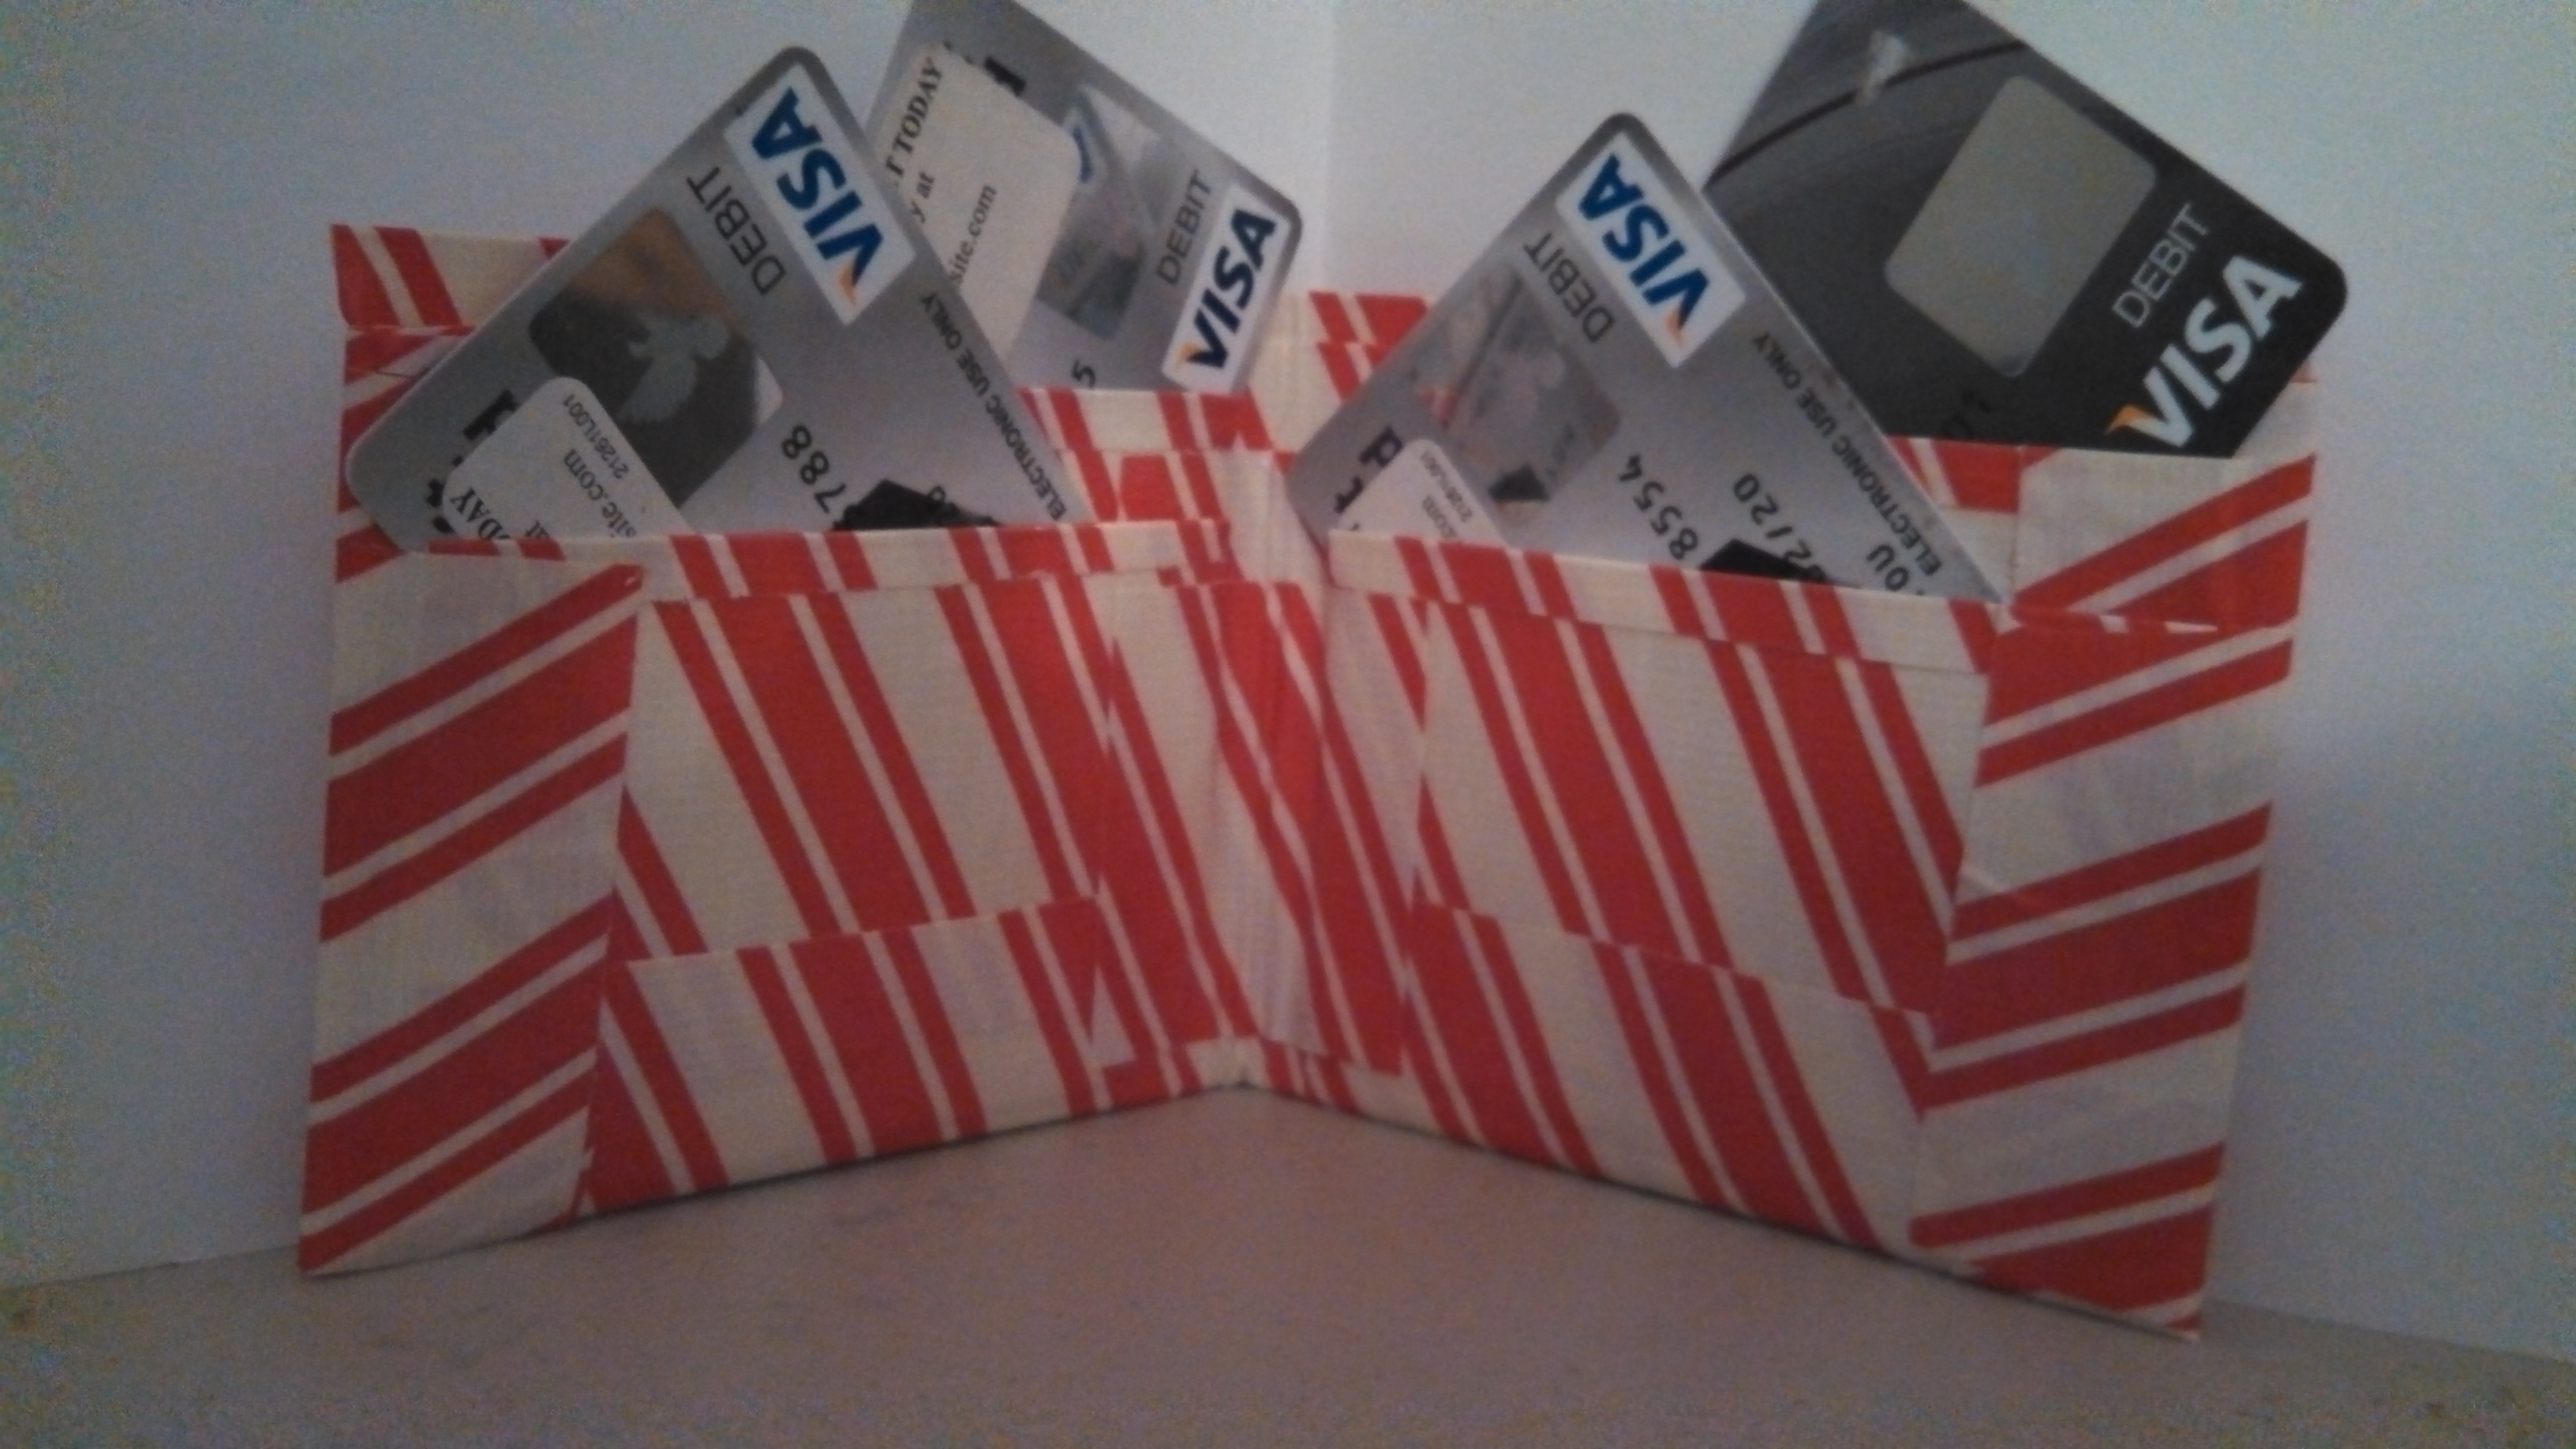 Candy Cane Duct Tape Wallet 183 Hey Duct Tape Guy 183 Online